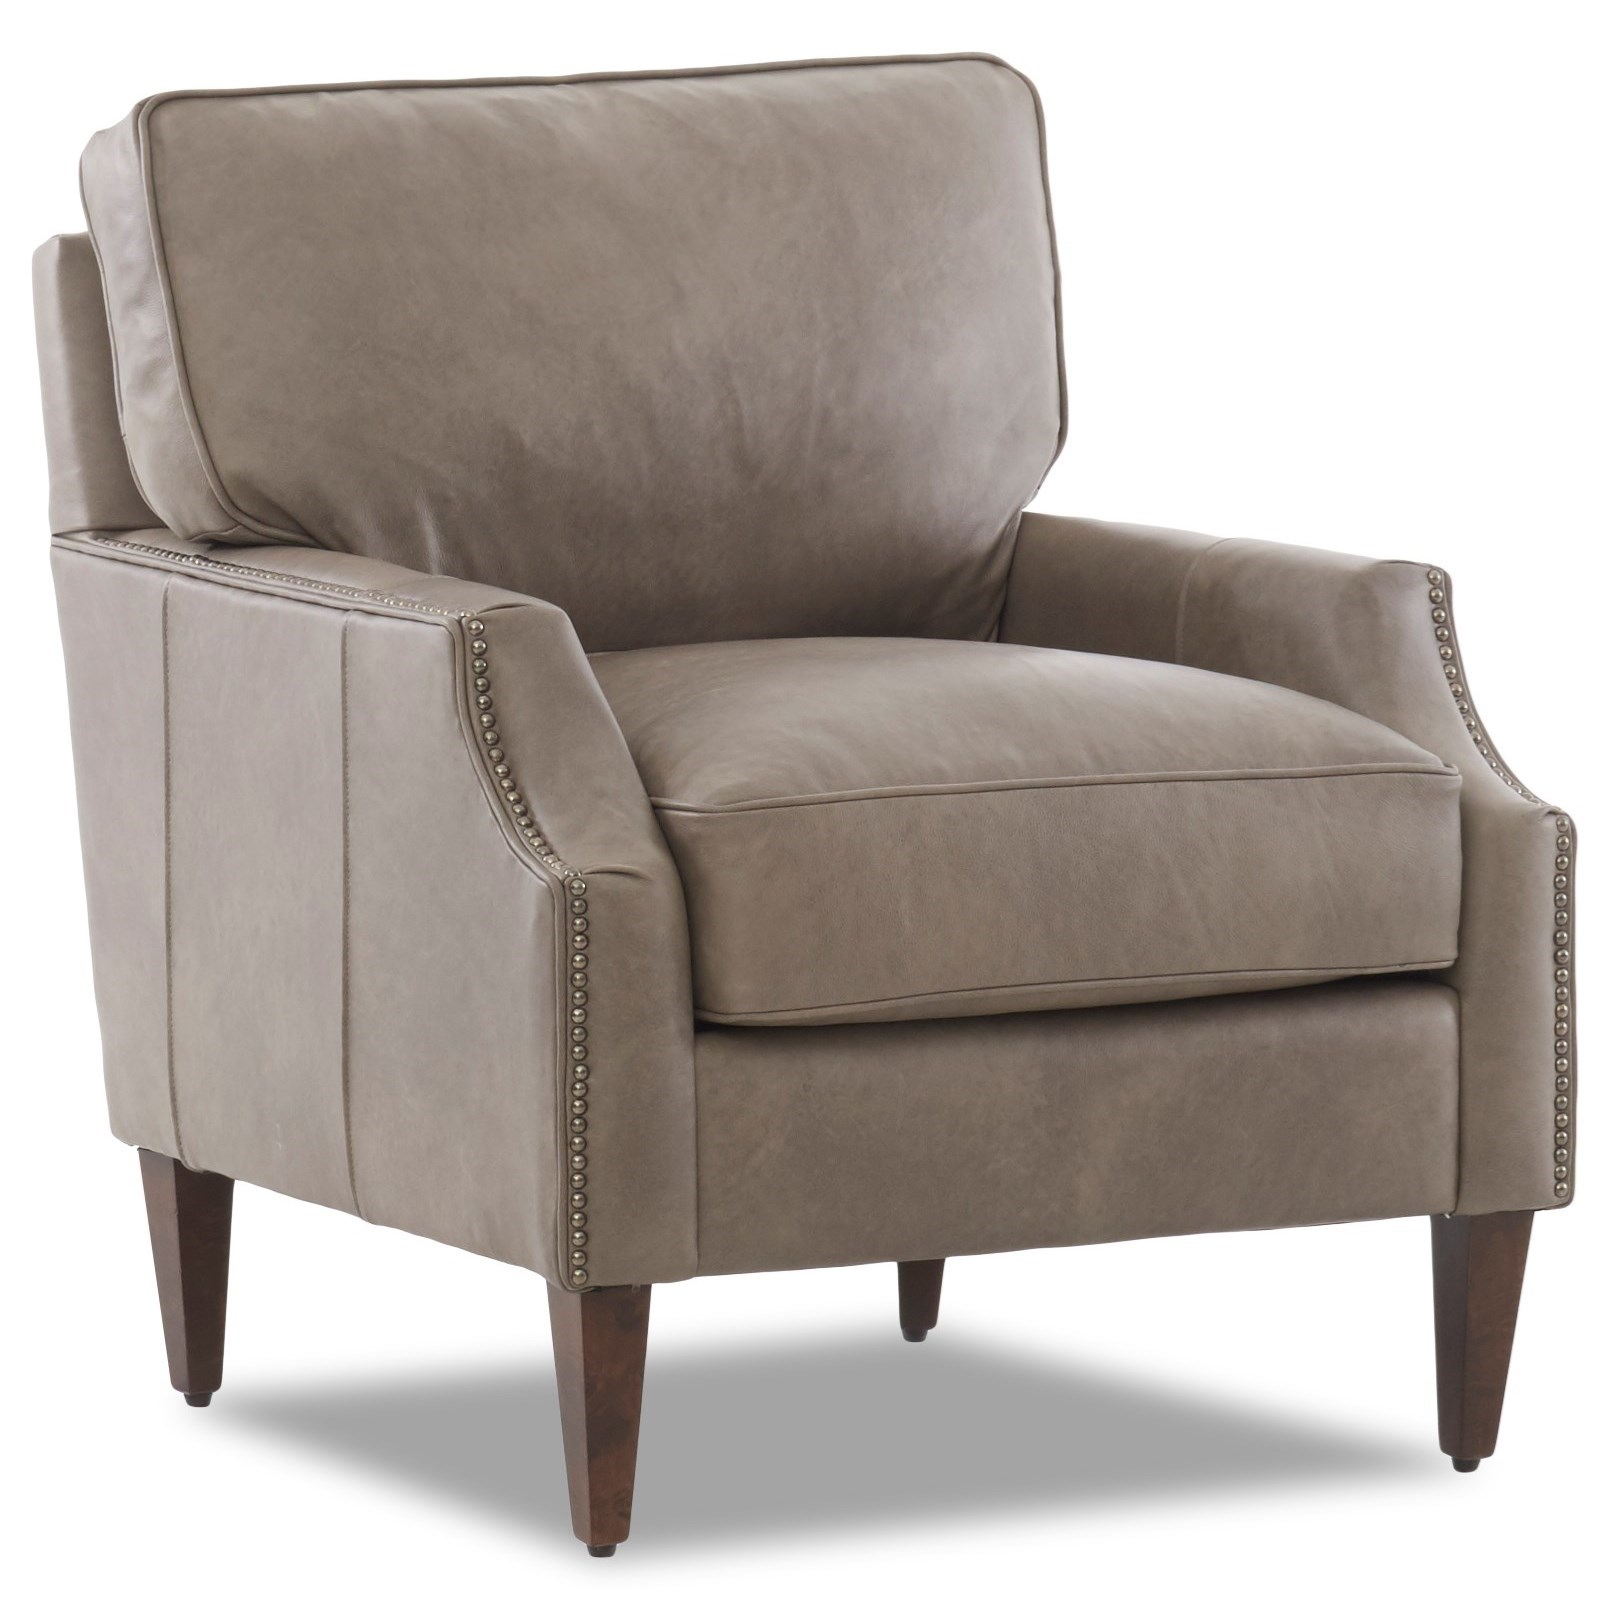 Leather Chair with Scalloped Arms